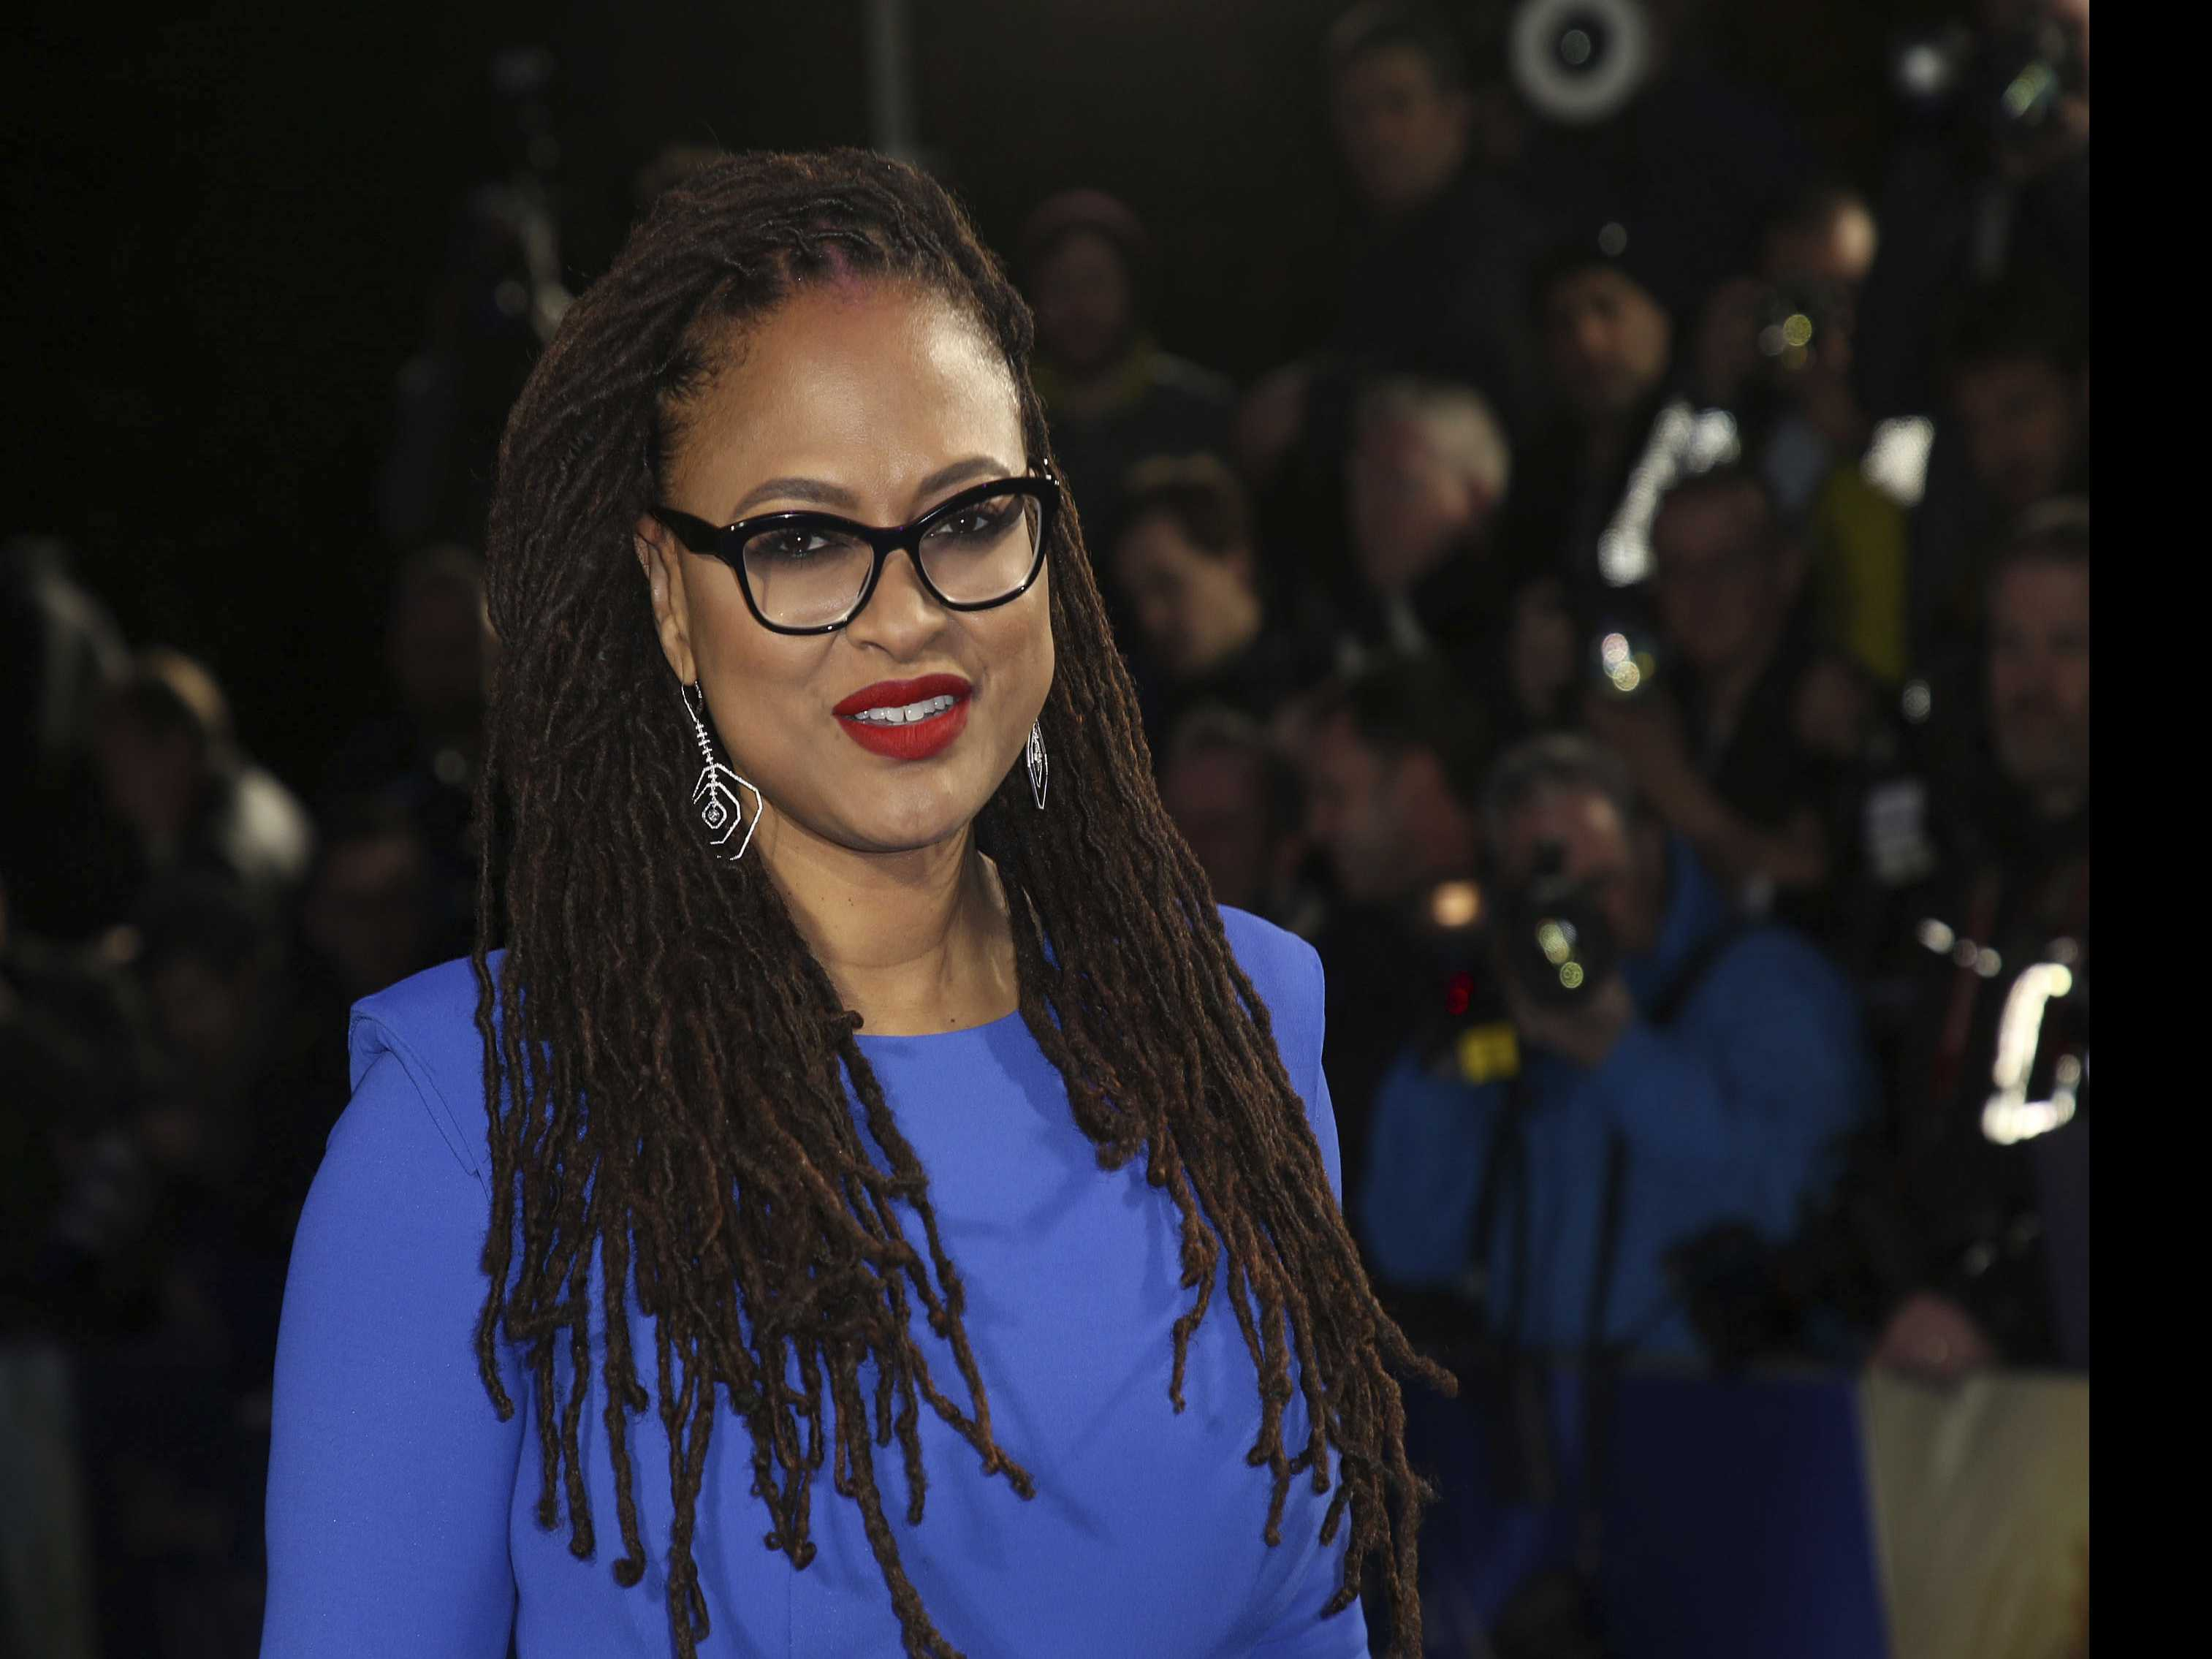 Ava DuVernay Scores Another Milestone for Black Female Directors